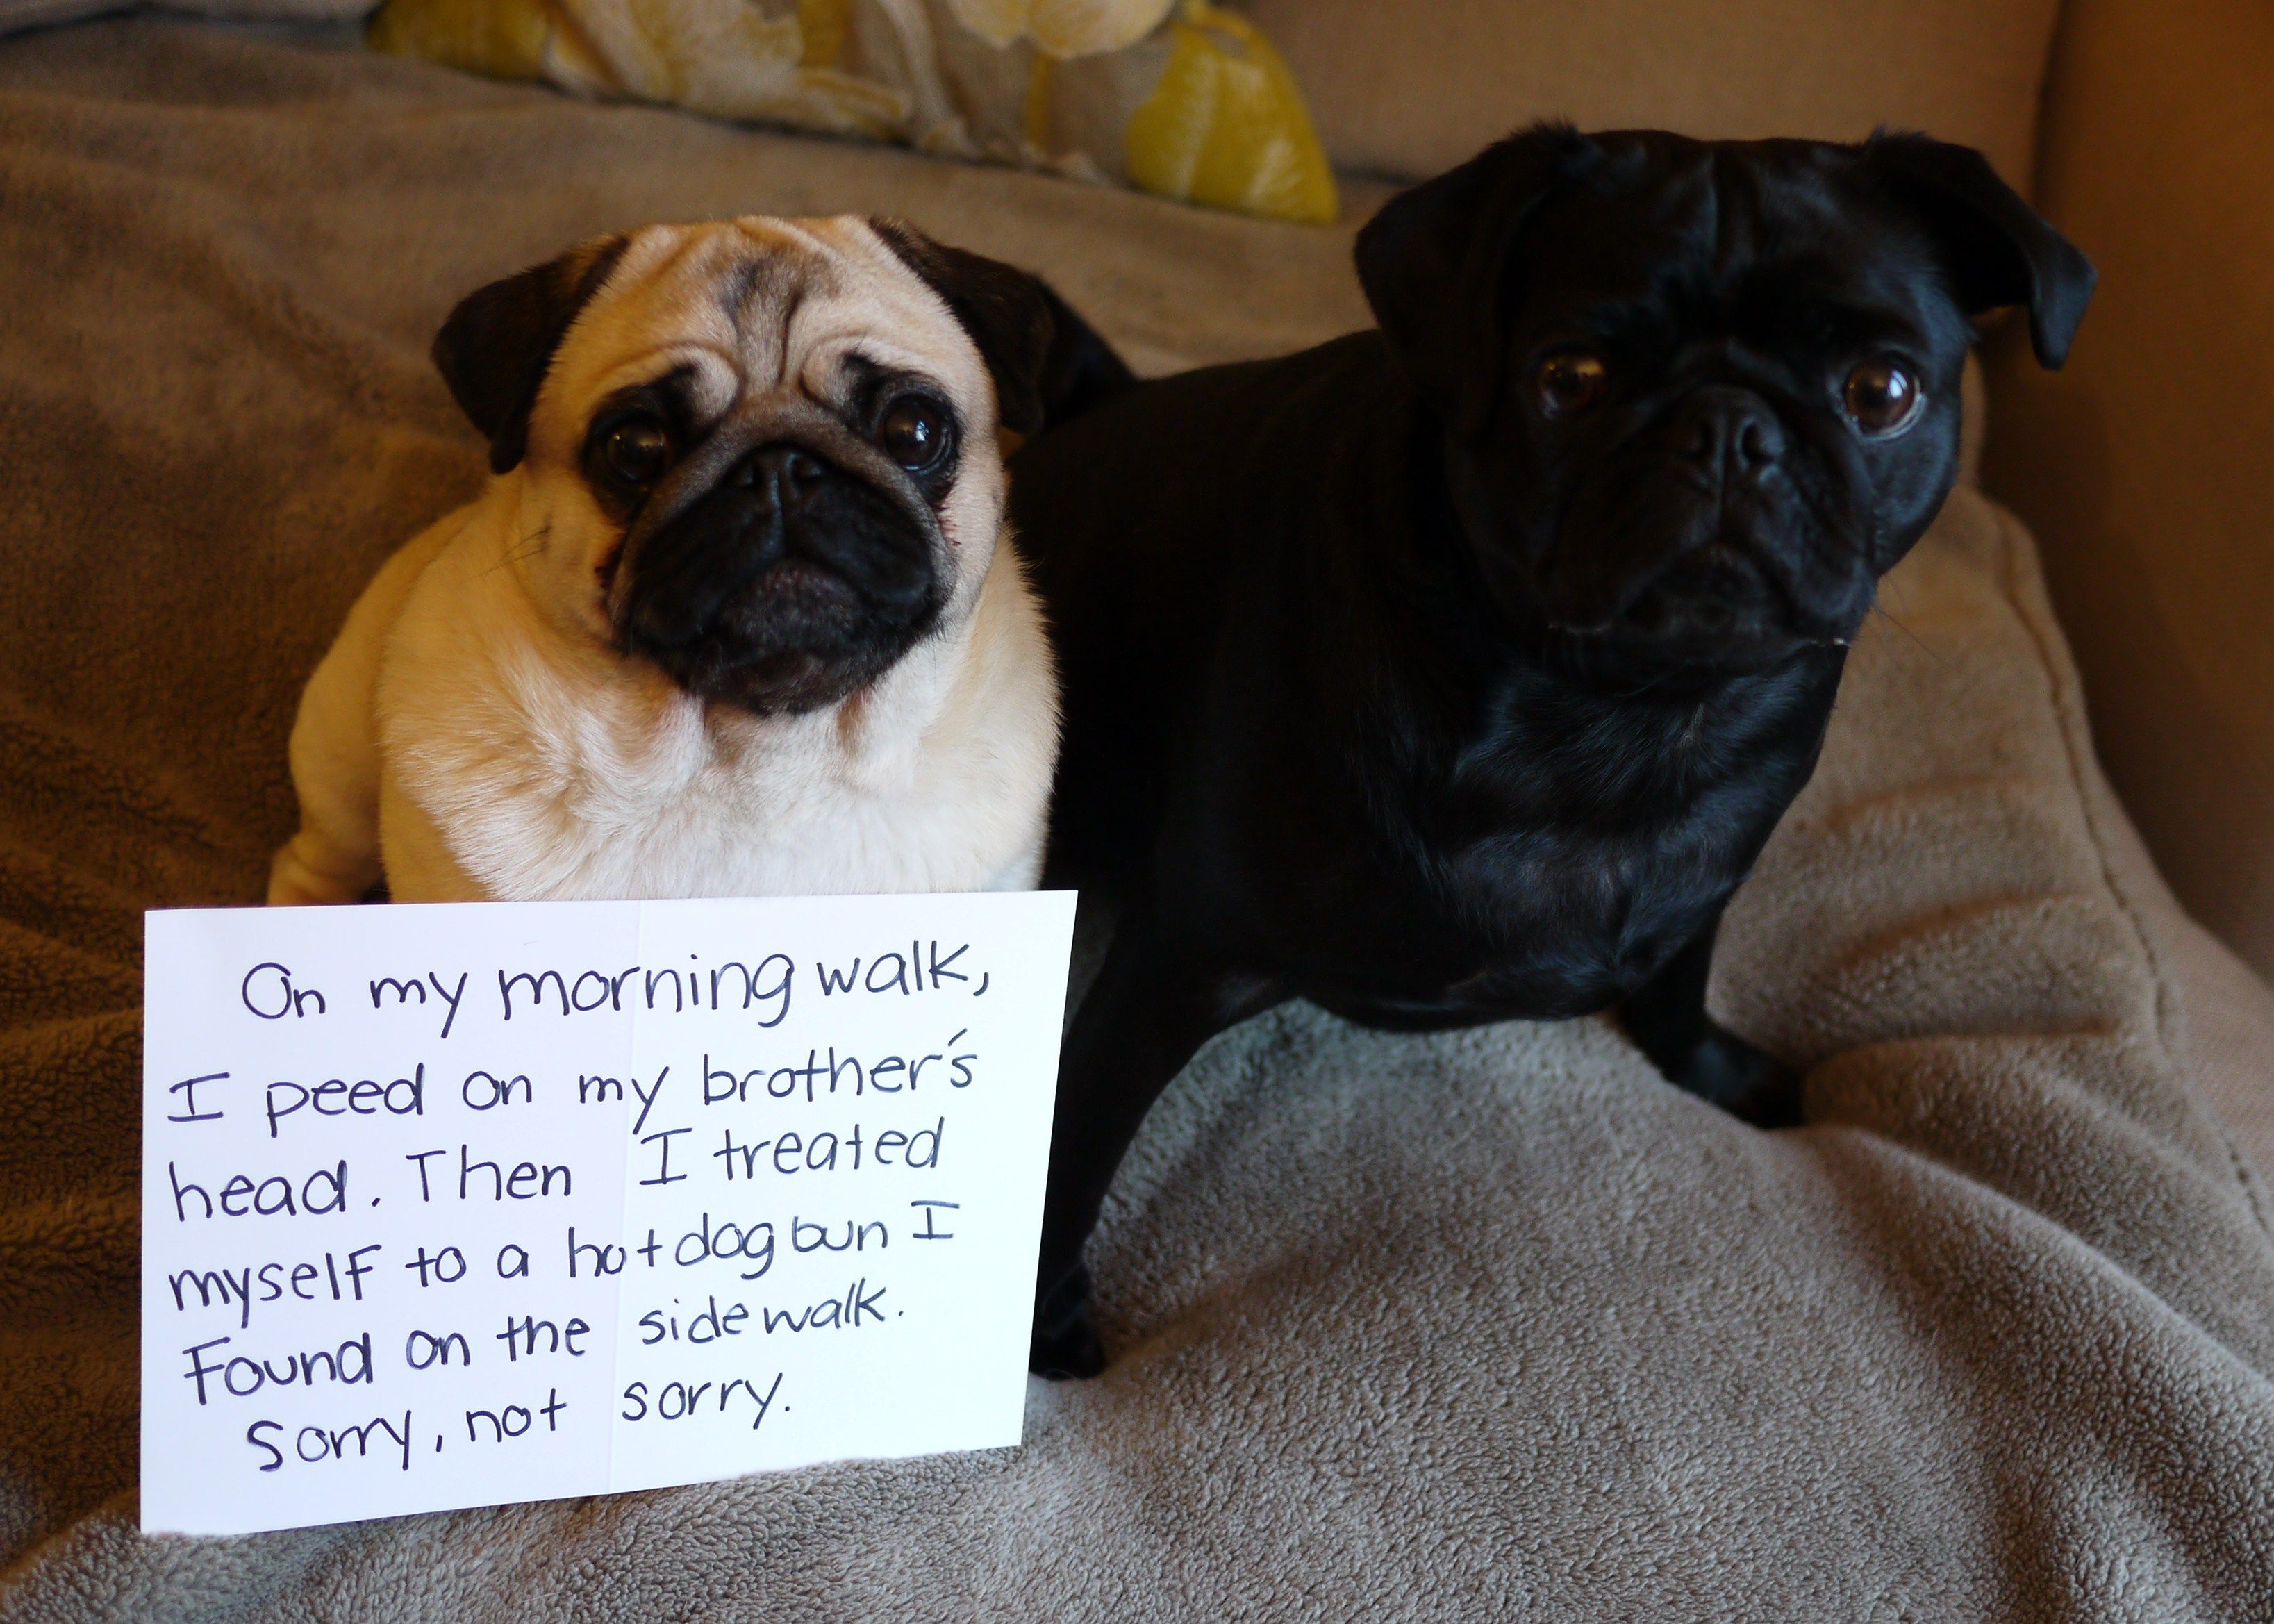 Dogshaming A Pug With No Apologies On My Morning Walk,